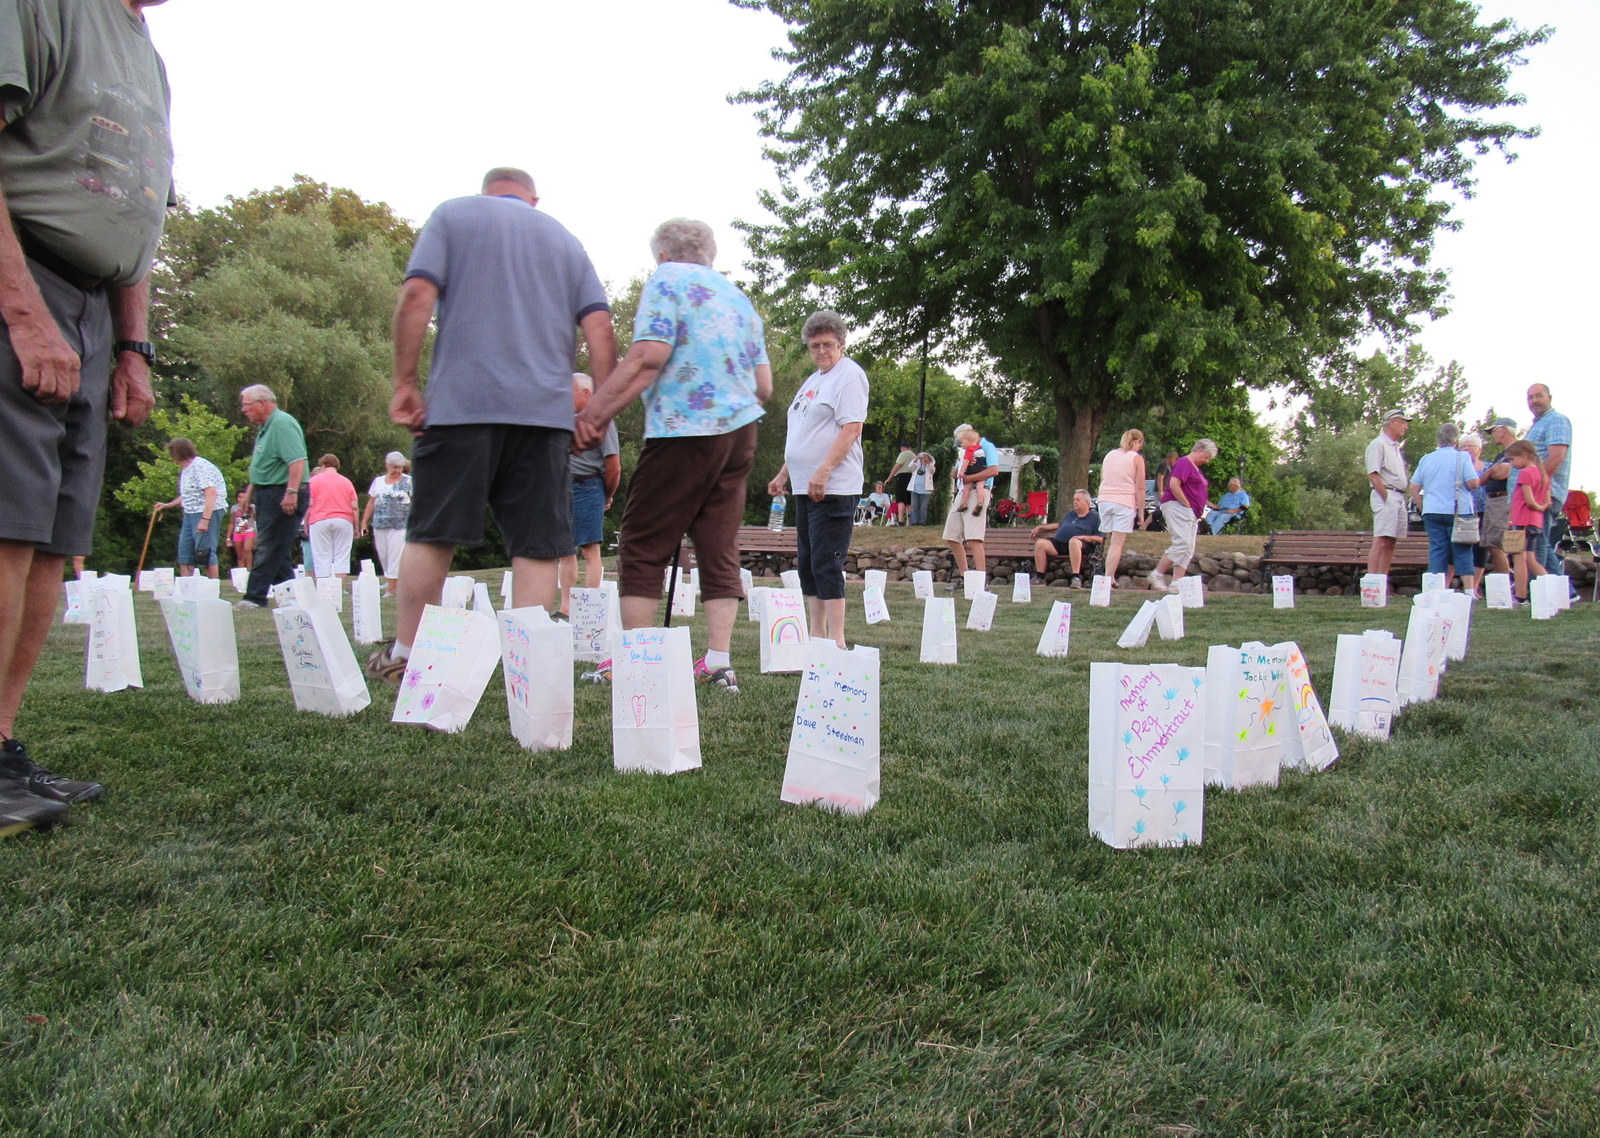 Those attending the Luminaria Lighting Ceremony in Churchville August 3 walk amongst the luminary bags, which are labeled with the names of those of have died from cancer, survived cancer, or who are currently fighting the disease. K. Gabalski photo